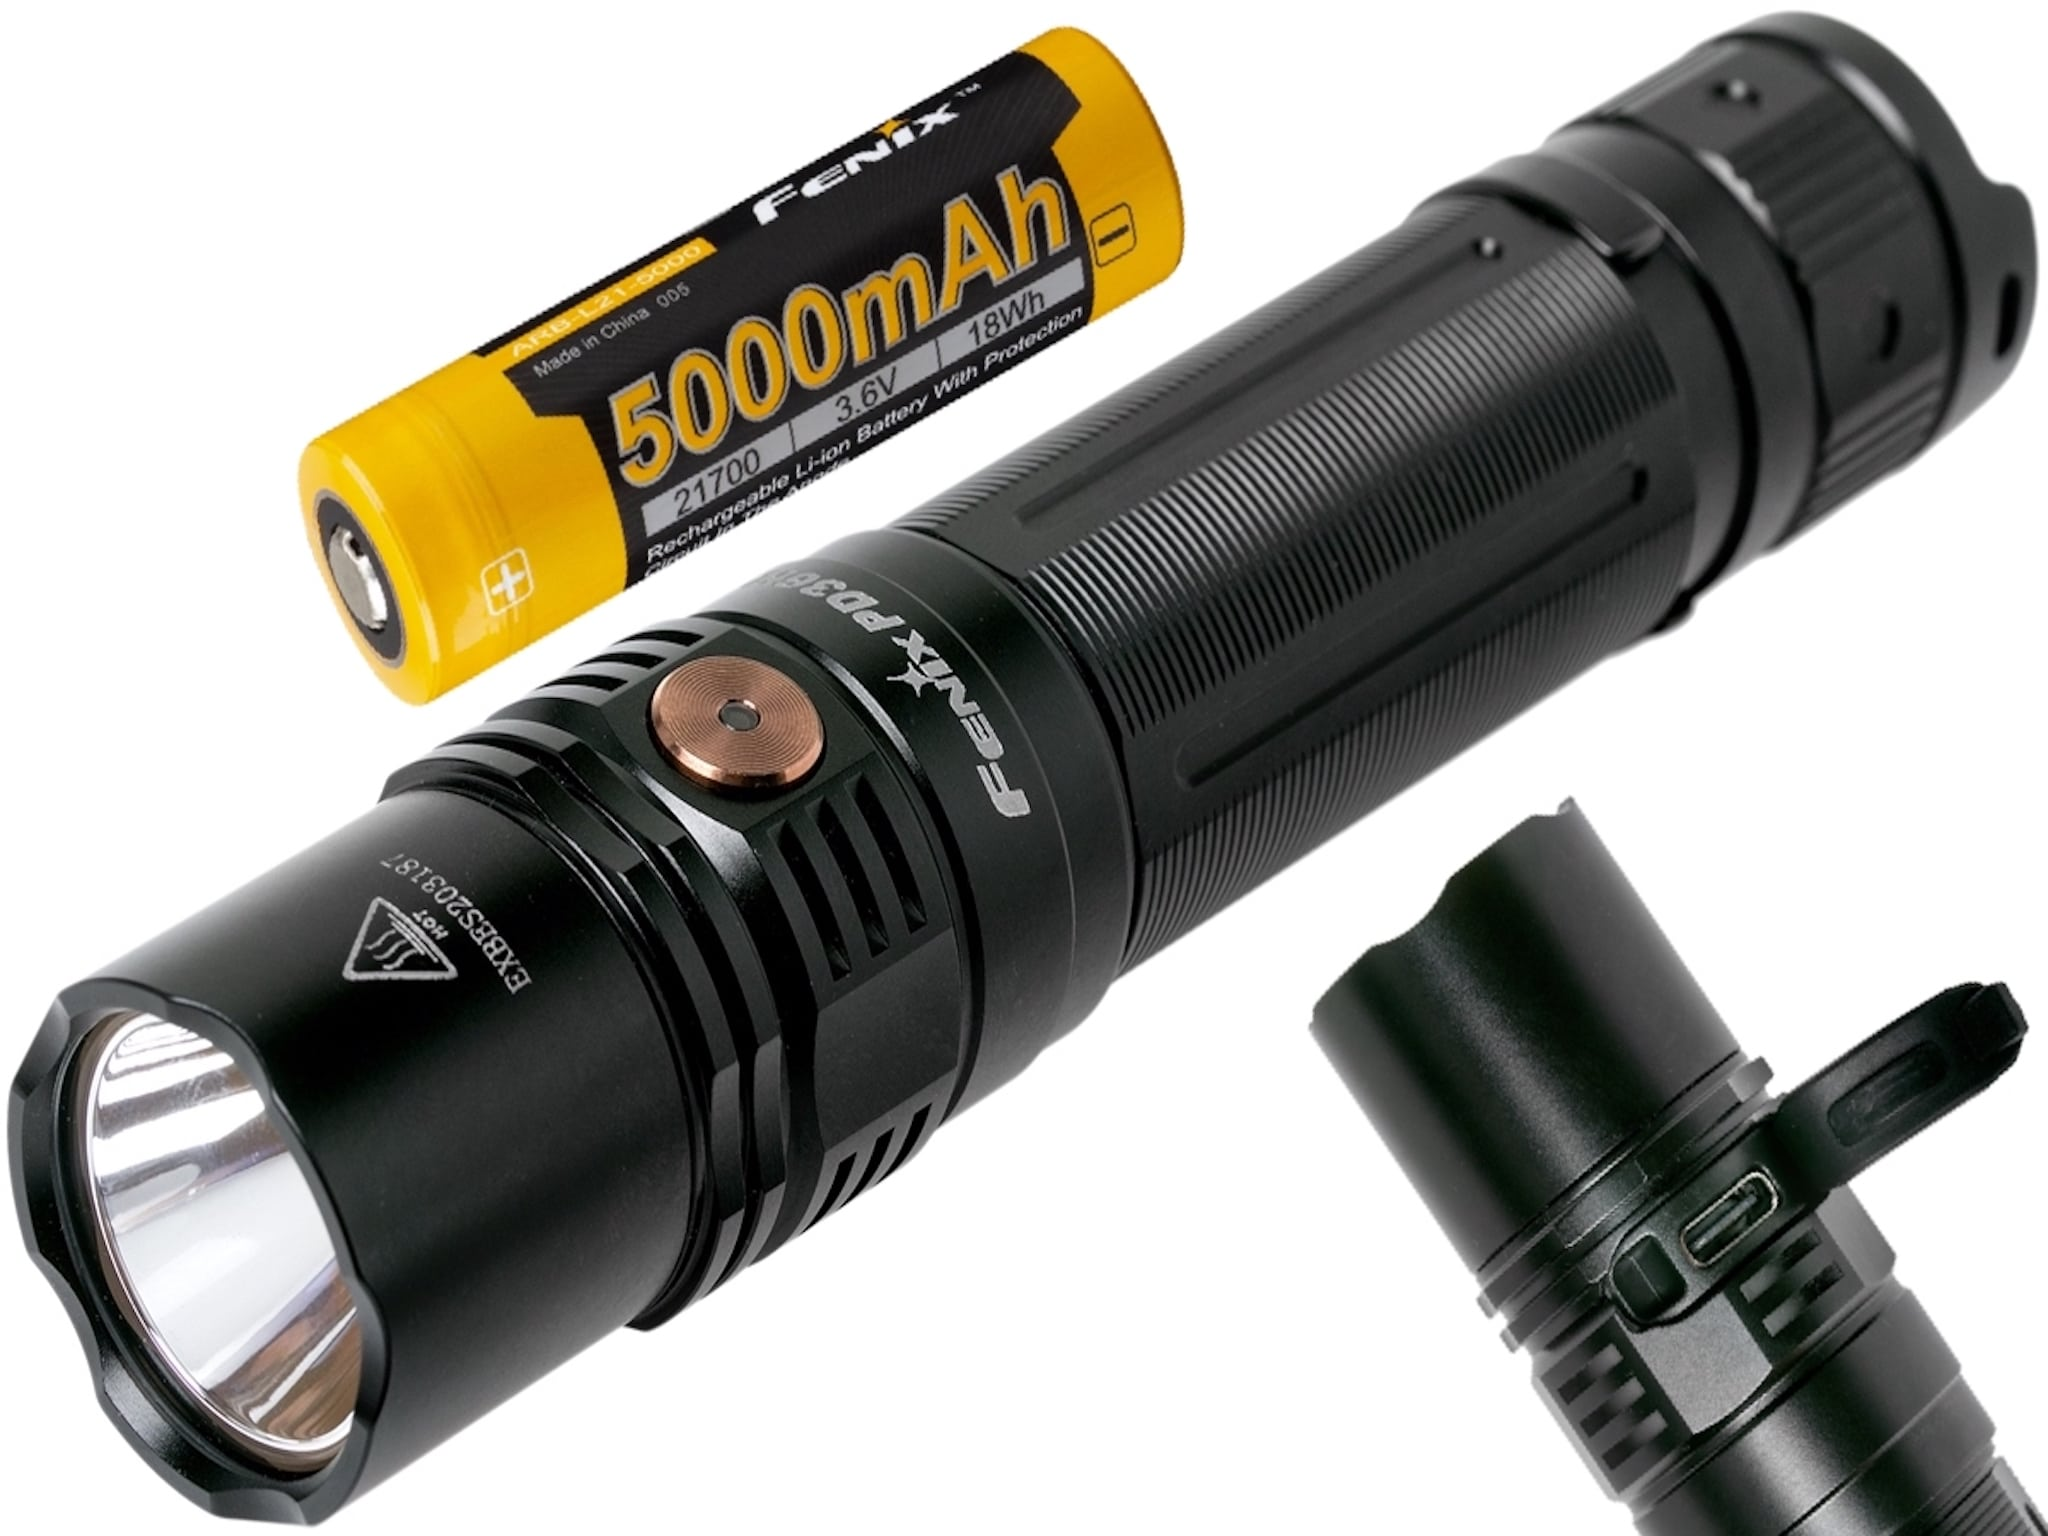 Fenix PD36R LED Flashlight, USB C Type Rechargeable Long Duration LED Torch, Extremely Powerful Tactical Flashlight in India, PD36R Review